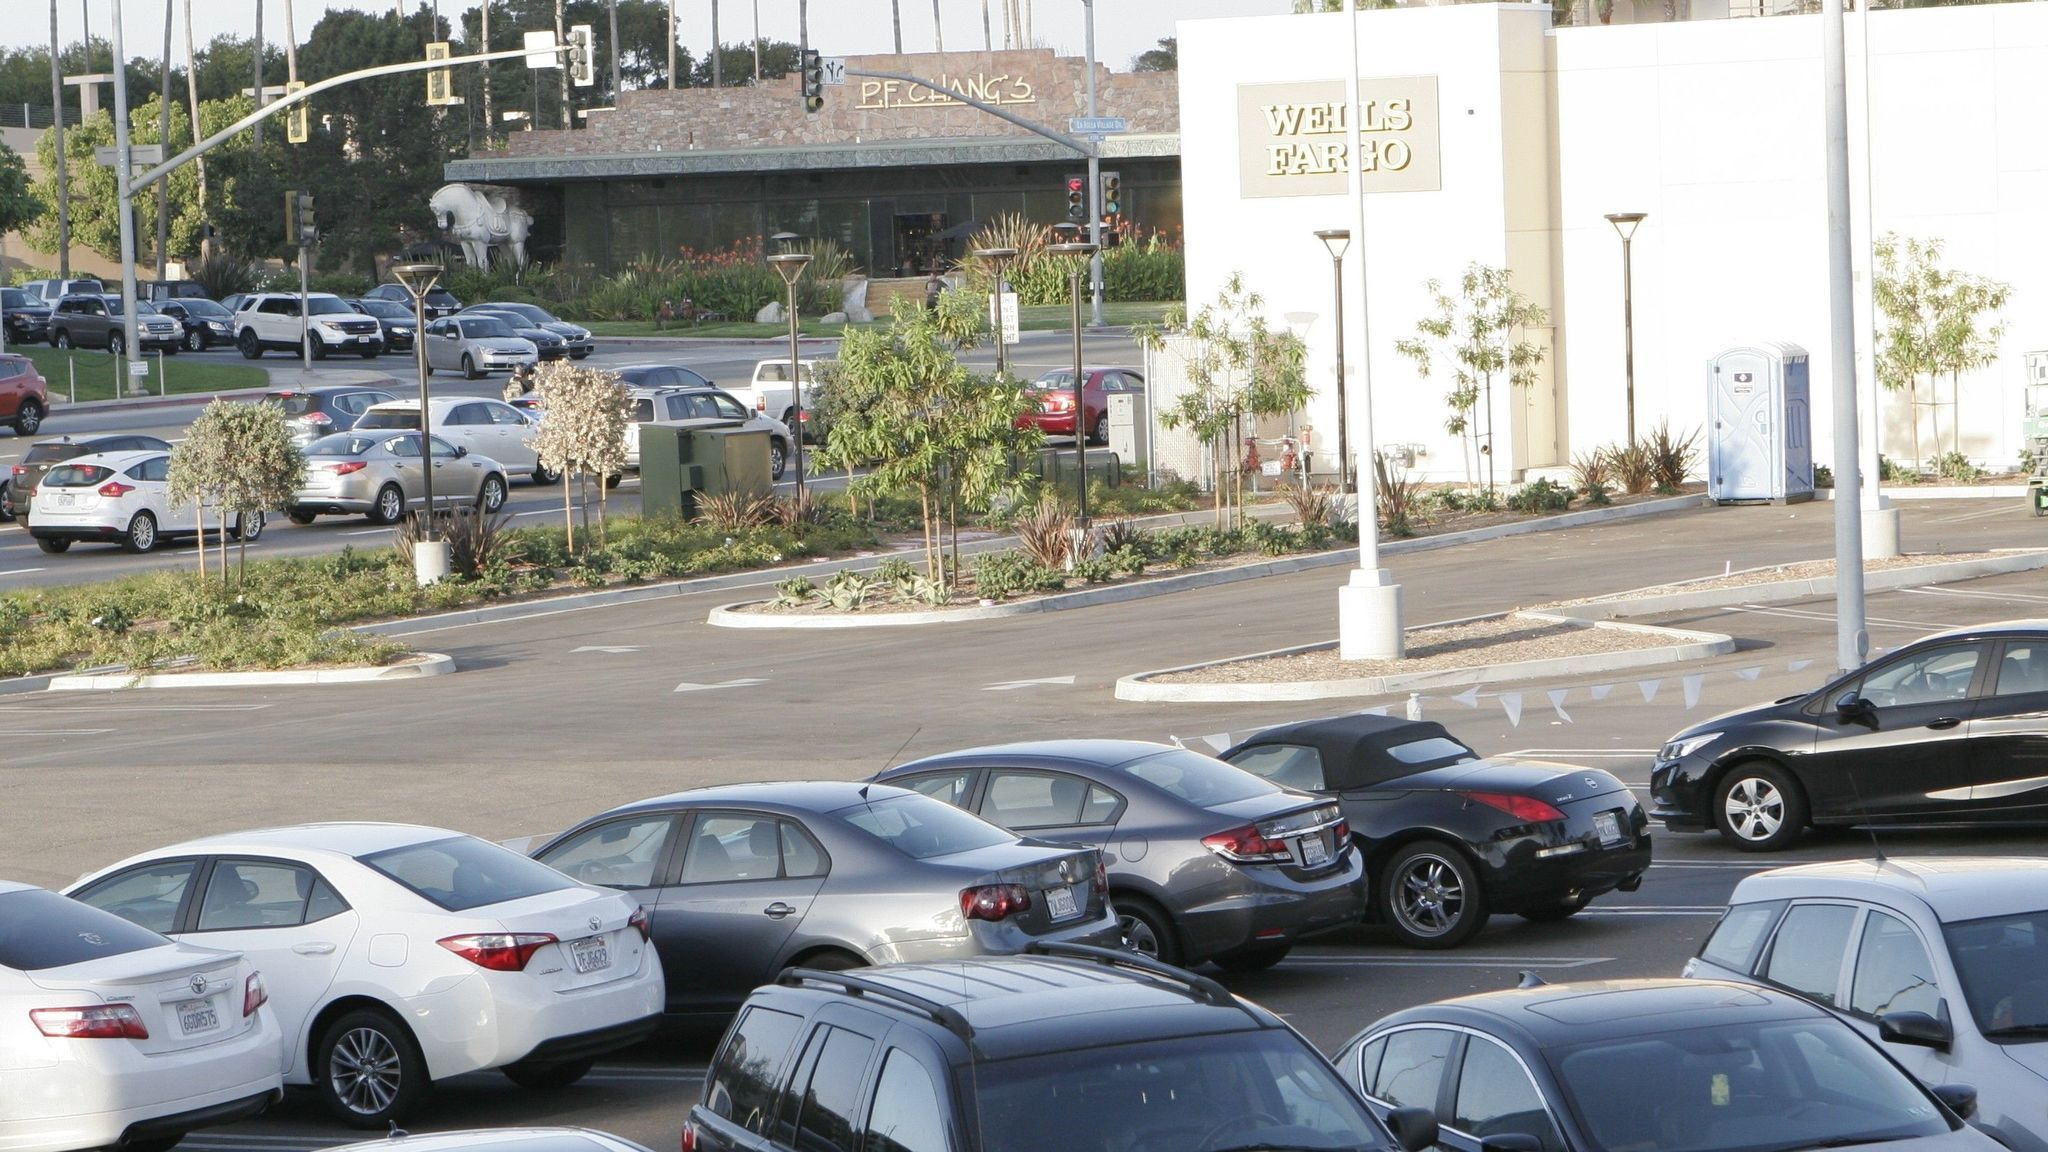 westfield utc to charge for parking after 2 hours la jolla light